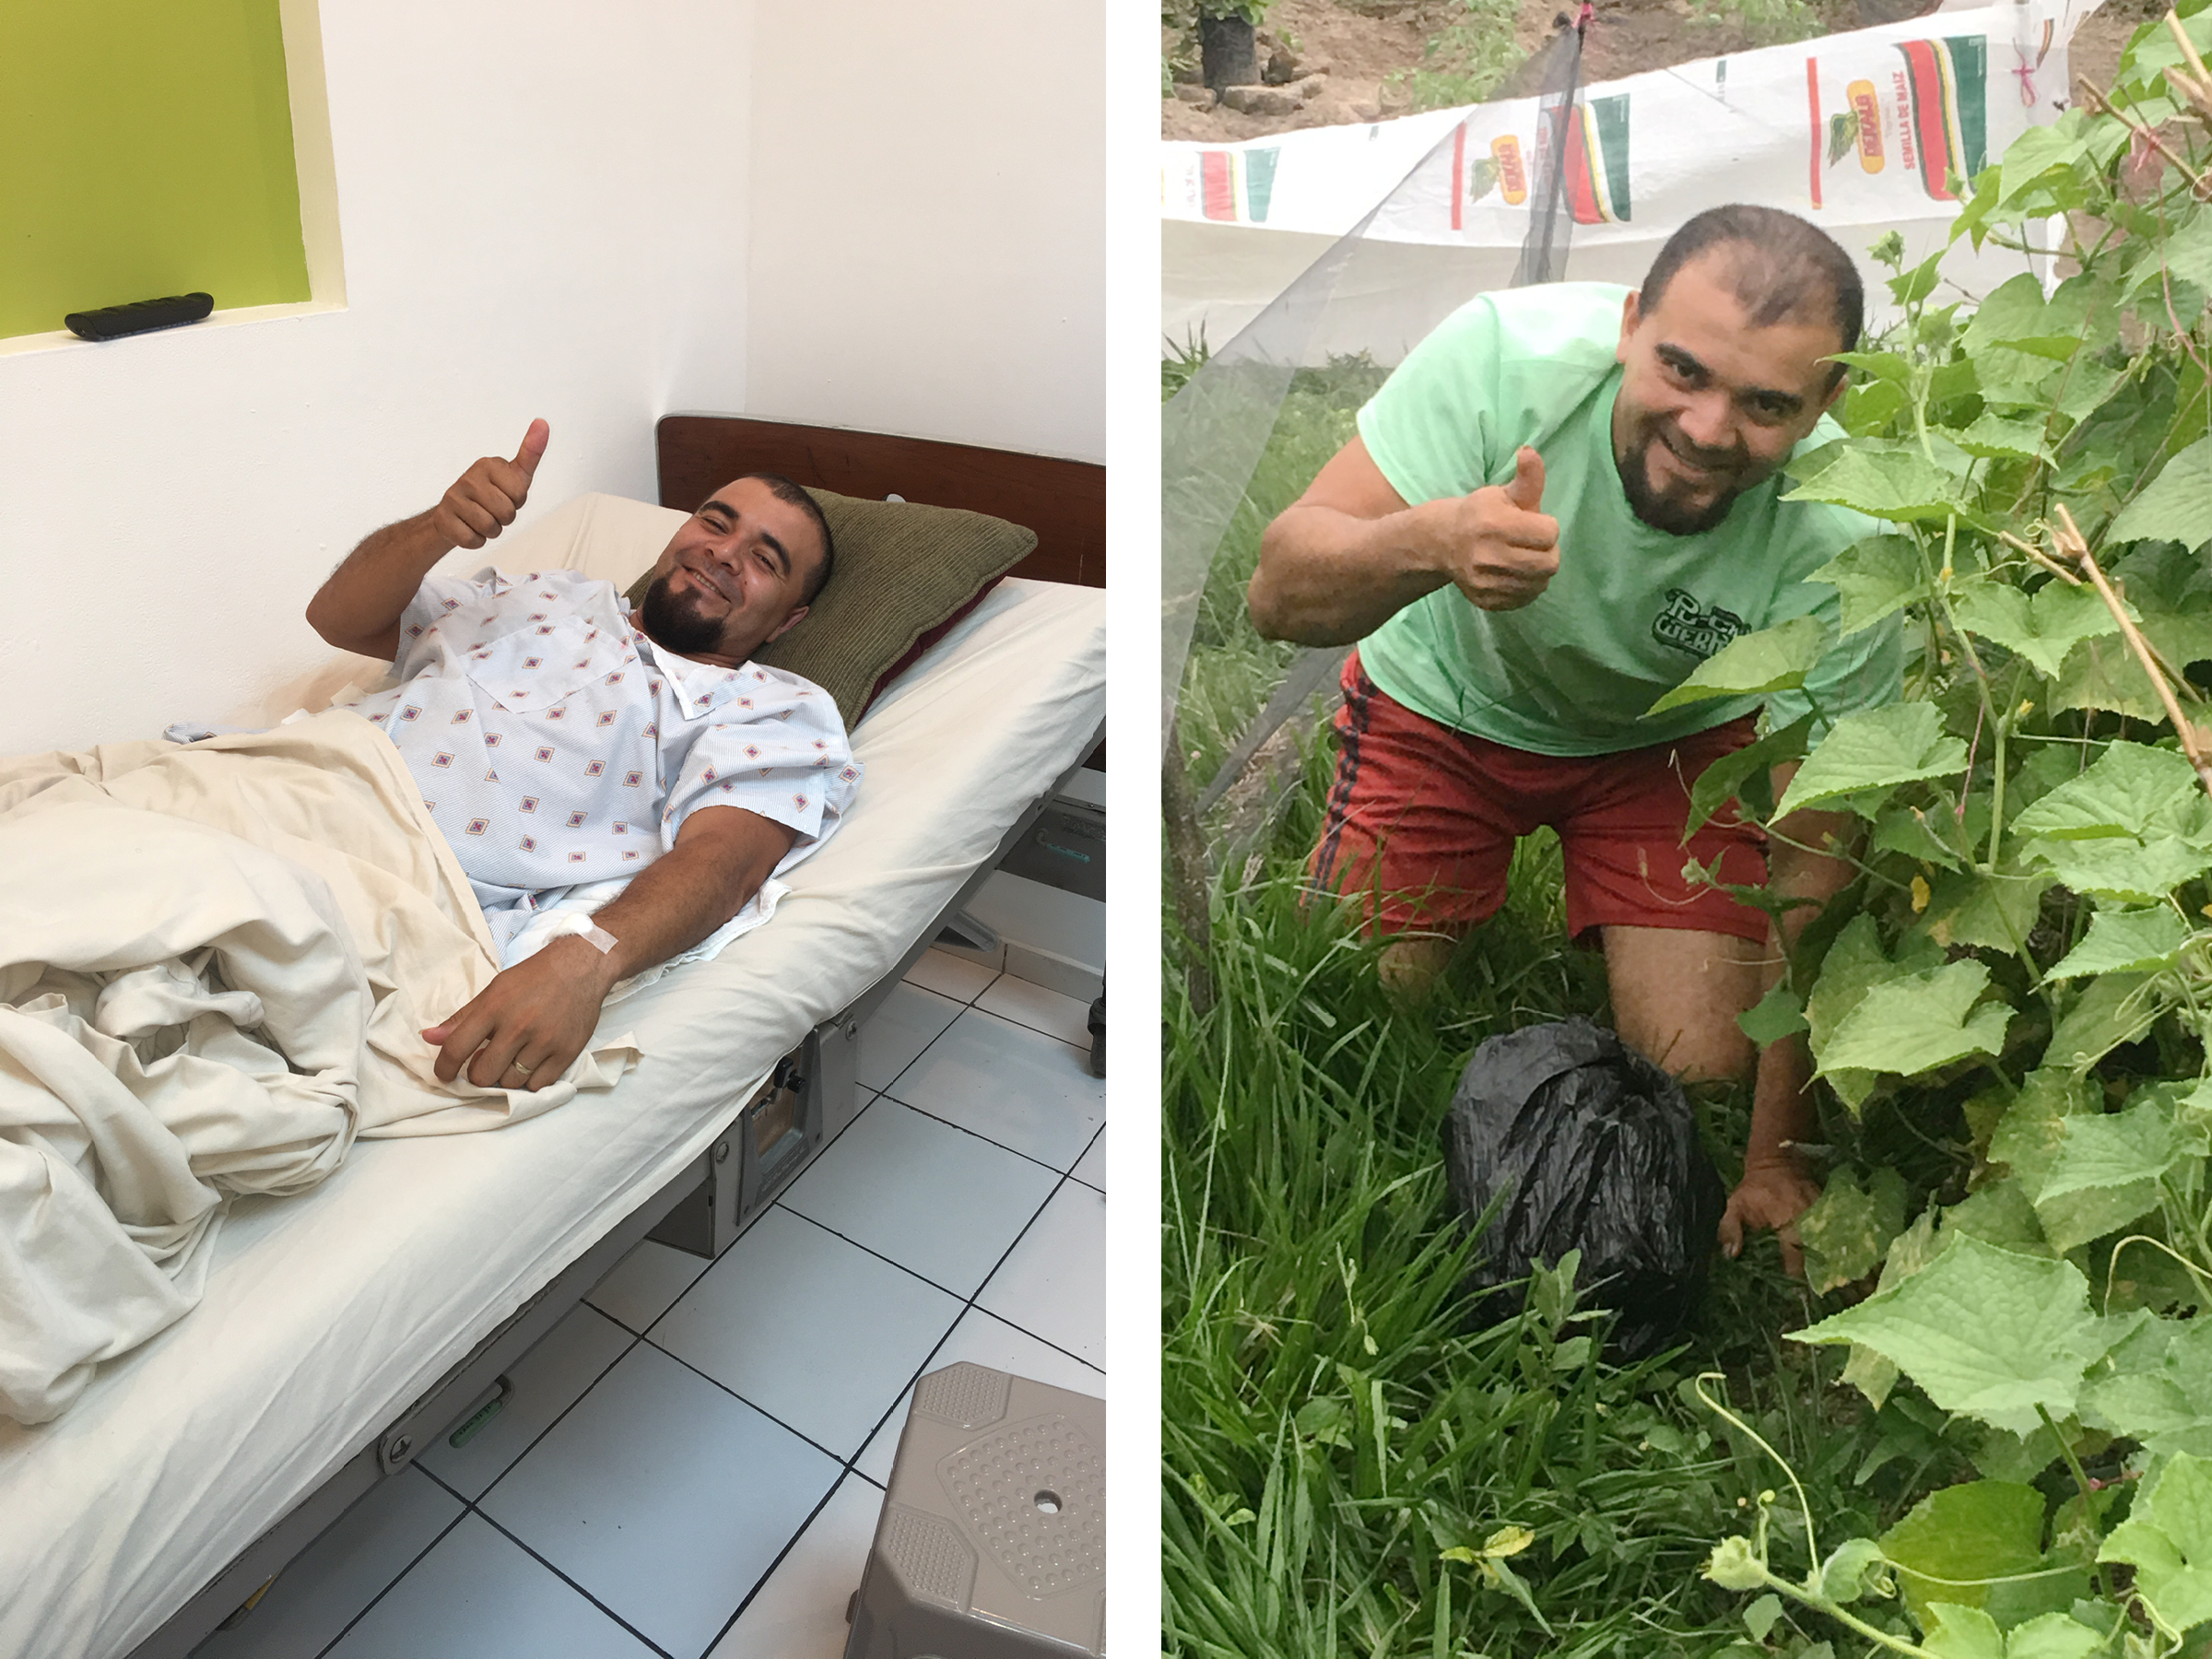 Antonio is one of many people in the third world that we support on a regular basis. Because of our help, Antonio was able to get the medical care he needed to continue to support his family, engage in ministry, and grow food for his community--his passion!